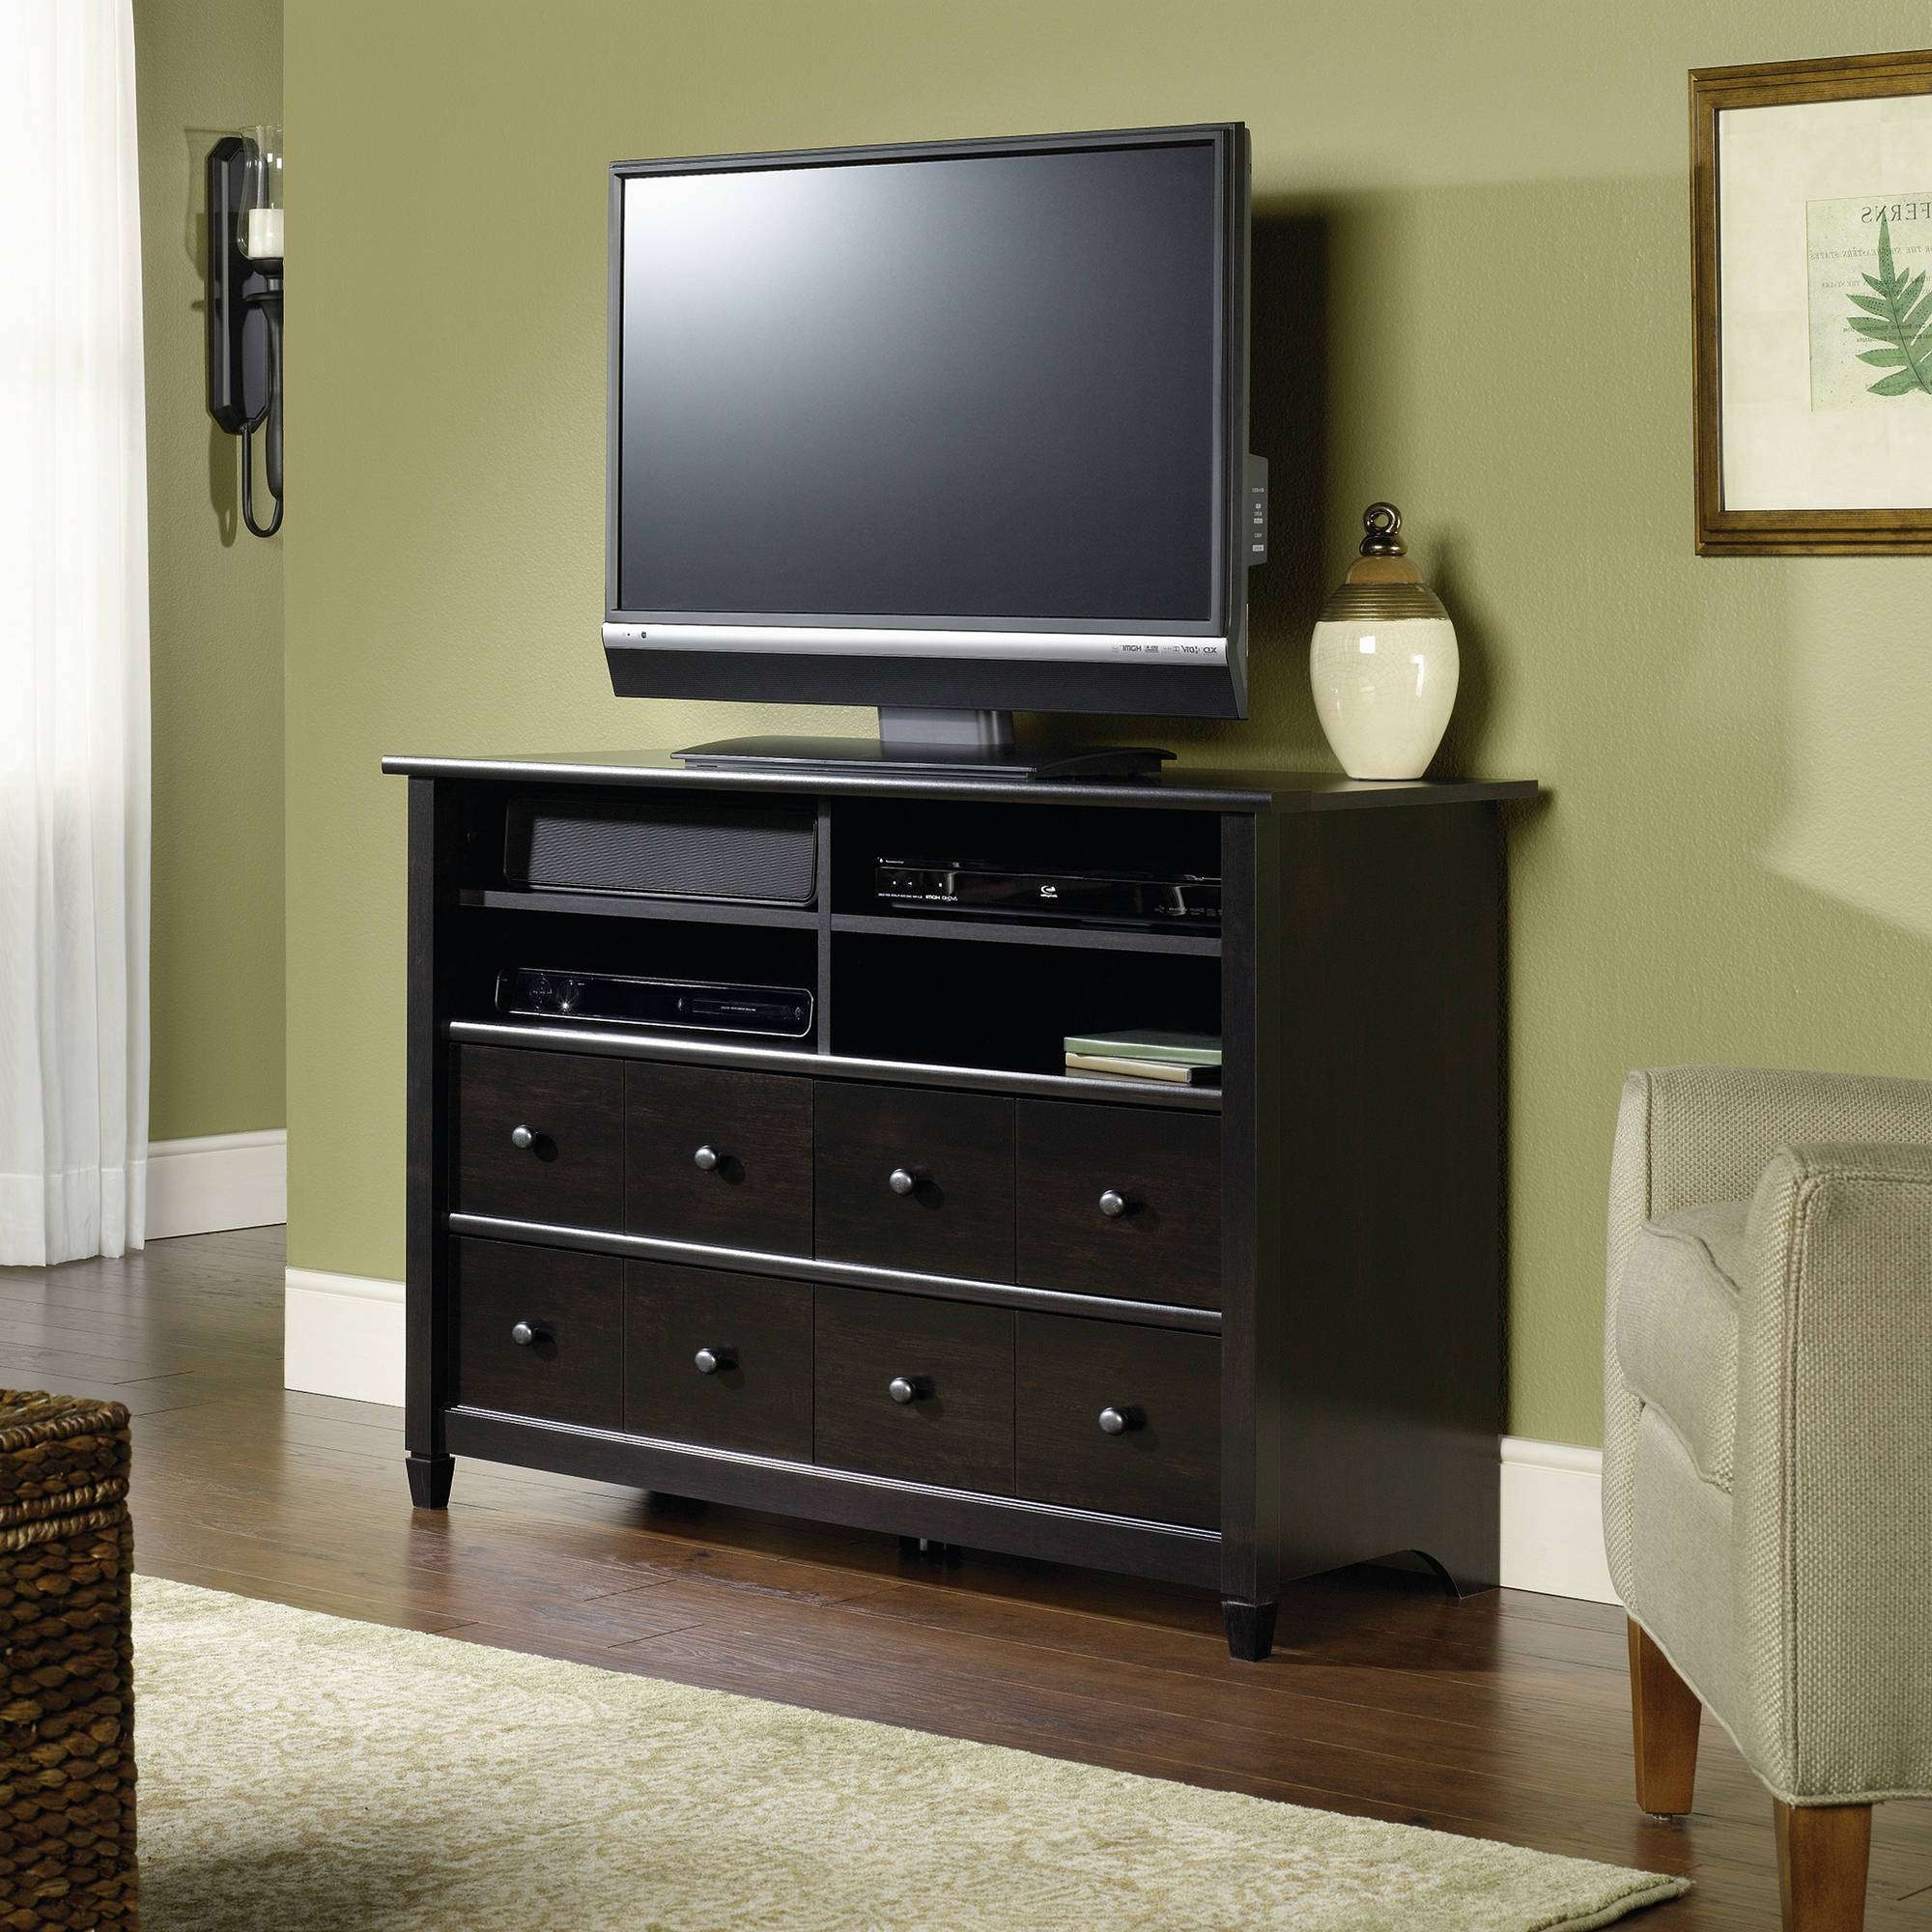 "Sauder Edge Water Tall Tv Stand For Tvs Up To 45"", Estate Black Pertaining To Black Tv Cabinets With Drawers (View 8 of 20)"